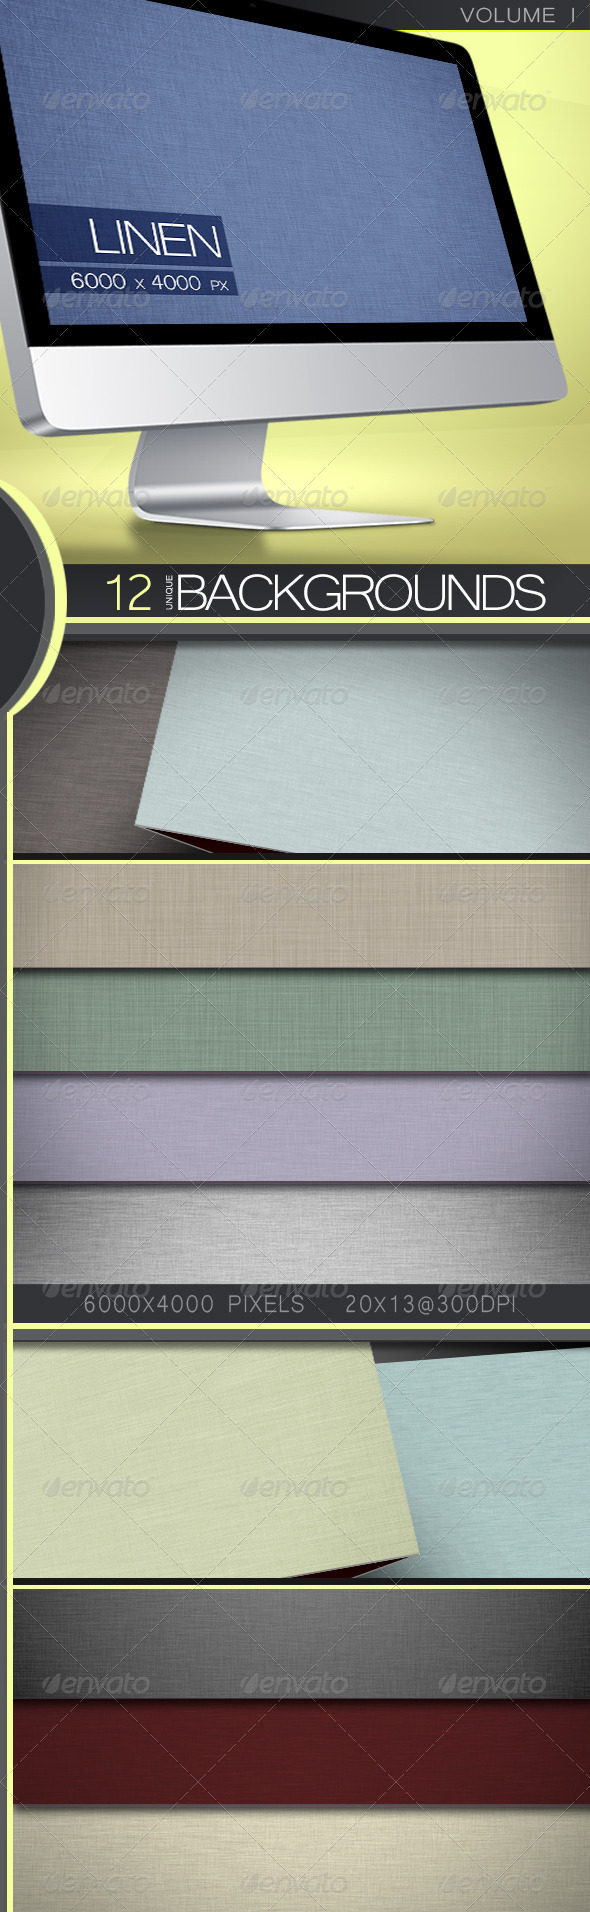 GraphicRiver Linen Backgrounds Volume 1 5351494